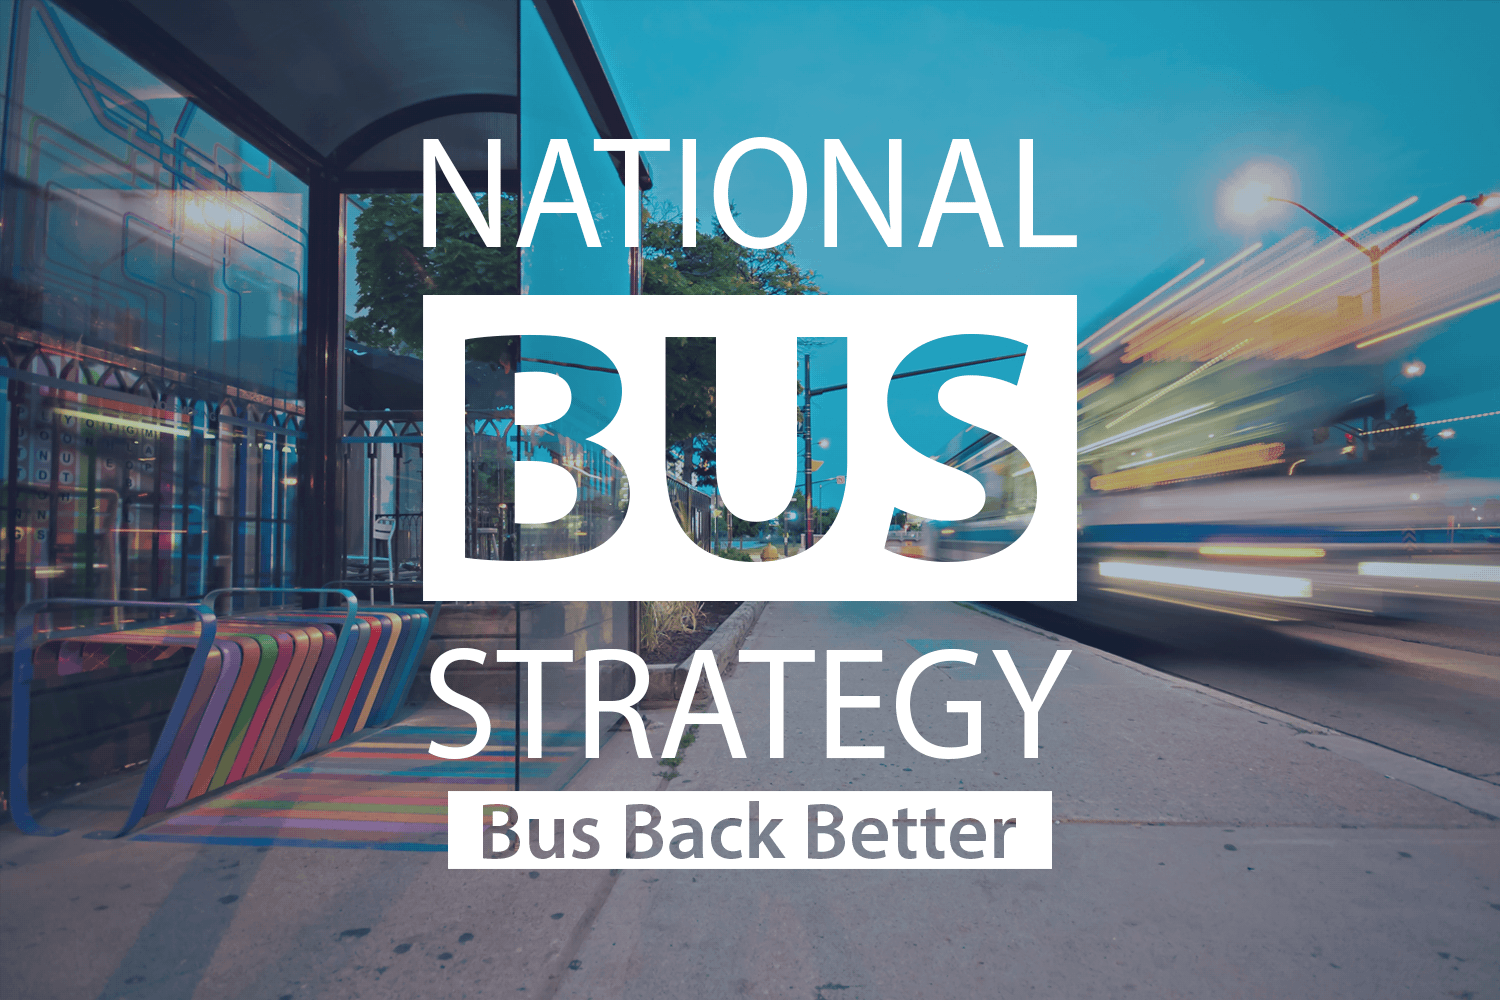 TThe New National Bus Strategy - Will it work?